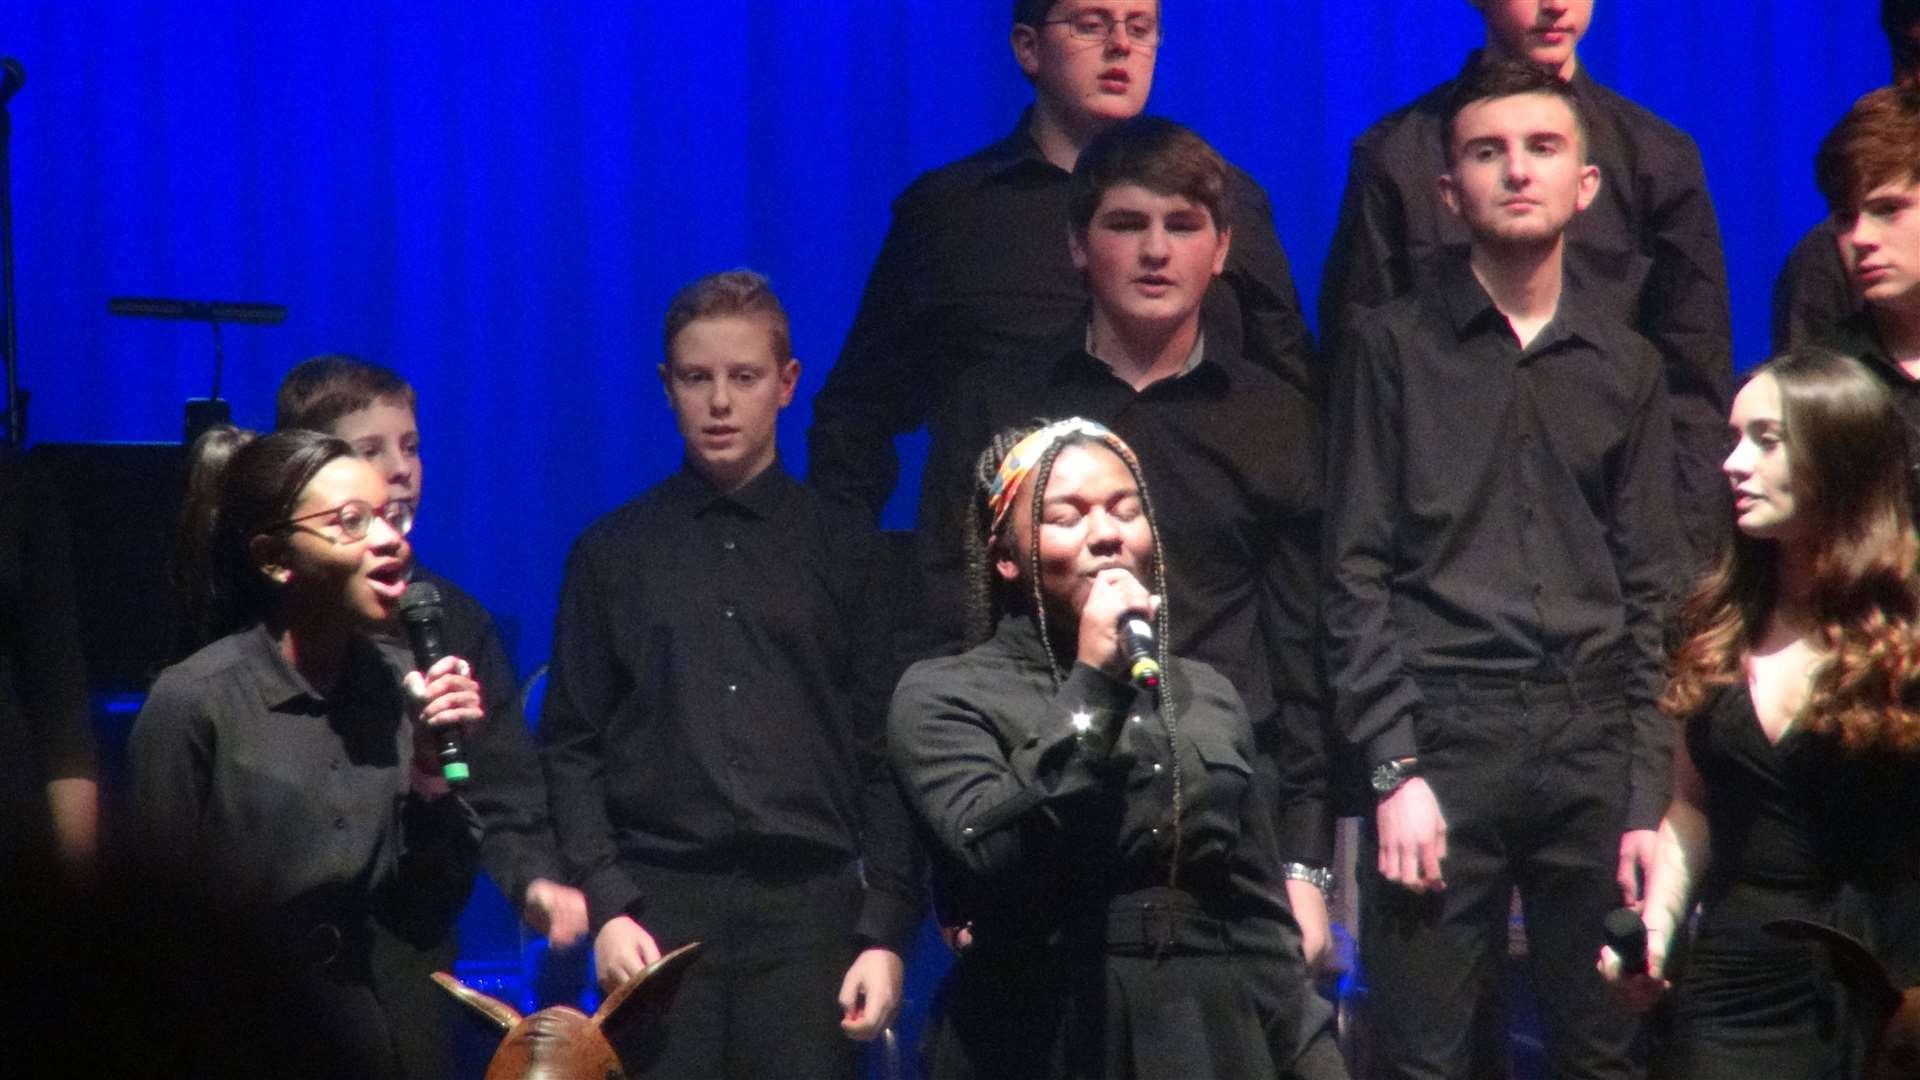 Singers at Springwood High School's Mallacoota Mash event in February which raised money for an Australian school affected by severe bush fires (43324341)